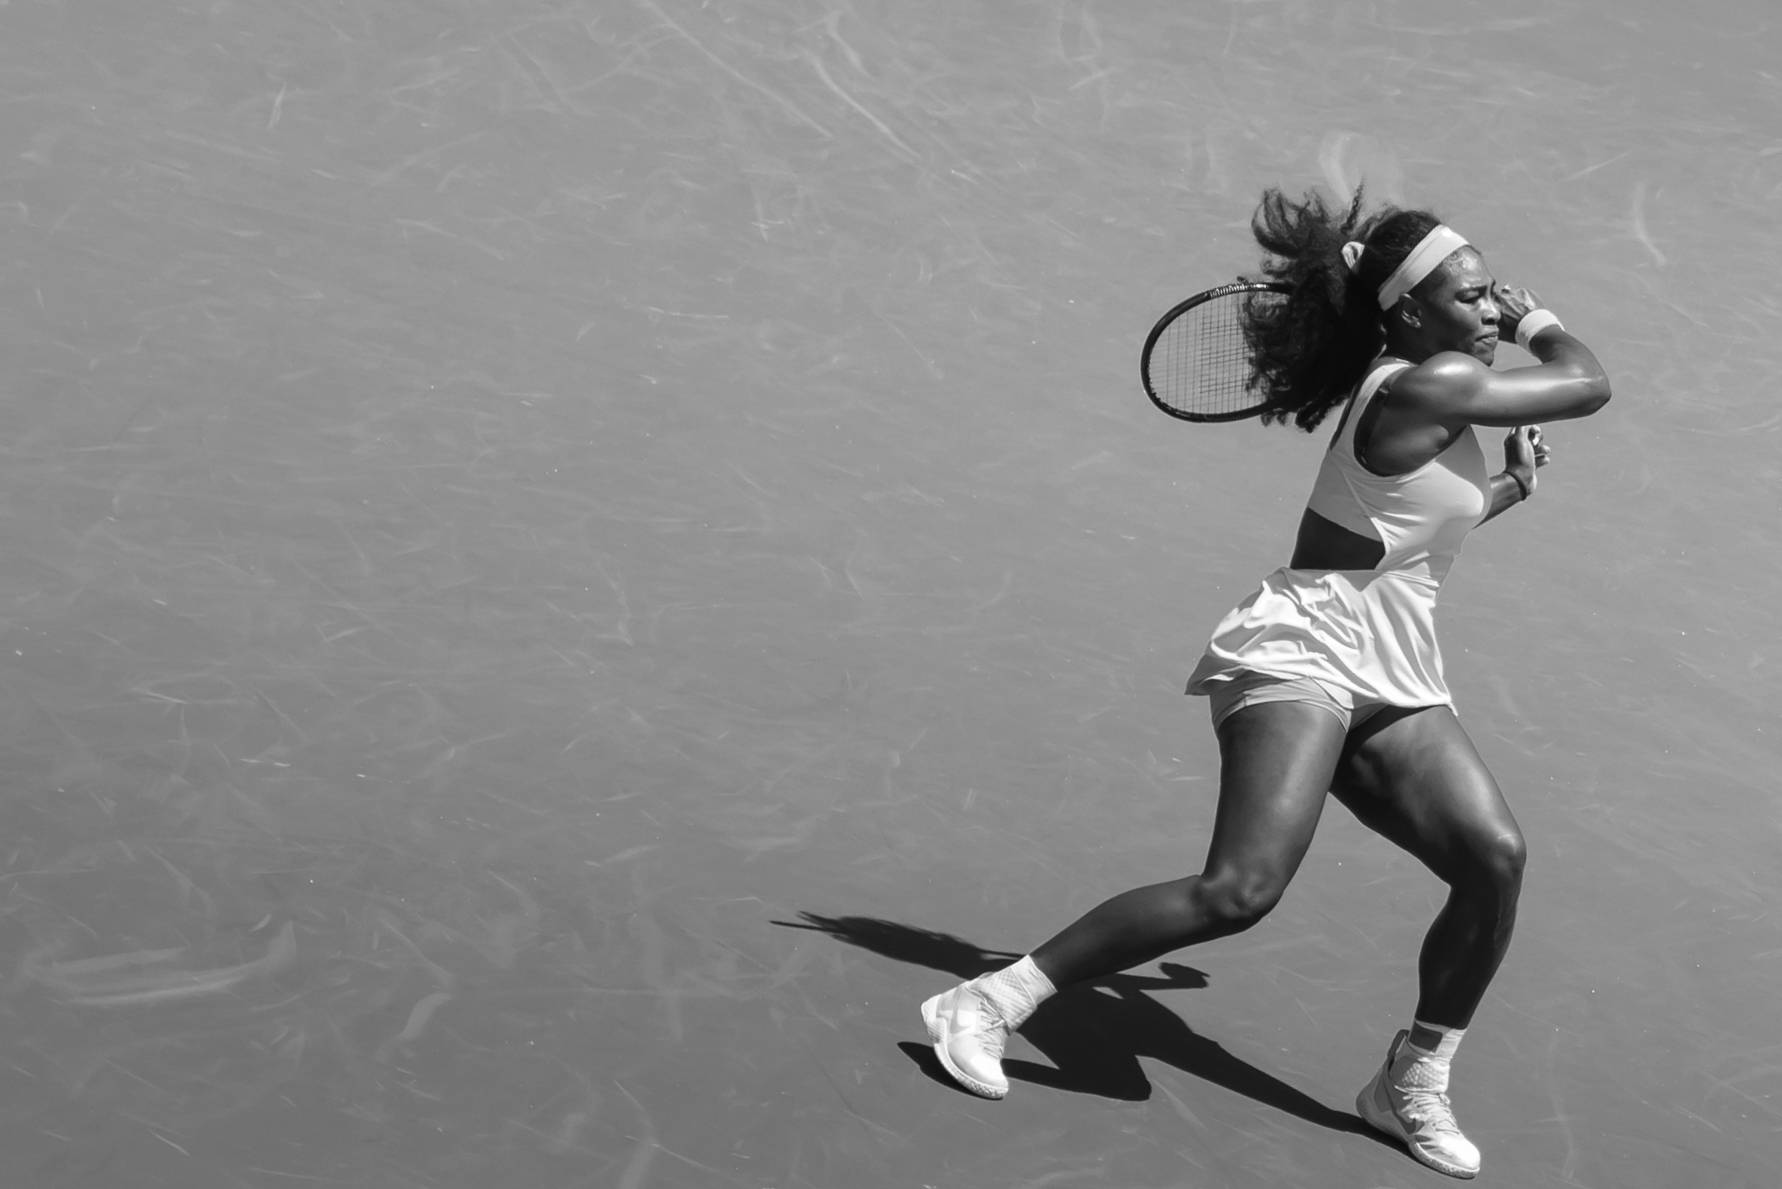 Serena Williams won her eighth Key Biscayne, Miami Open title while she has not been beaten in 2015, this is her 21-match winning in a row! ...only three women in the history of tennis had won an event eight times or more: Chris Evert, Martina Navratilova and Steffi Graf, which is about as esteemed list as you can get. After a dominant 6-2, 6-0 over Carla Suarez Navarro in the finals of the Miami Open, Serena Williams can be added to it.  Ref: http://ftw.usatoday.com/2015/04/serena-williams-miami-open-record-martina-steffi-most-wins-at-a-tournament Despite Saturday's hammering, Suarez Navarro can be happy with her week in Miami where she captured some big scalps including that of Serena's elder sister Venus Williams in the quarter finals. Ref: http://edition.cnn.com/2015/04/04/tennis/serena-williams-miami-open/ Key Biscayne, Miami, Florida.